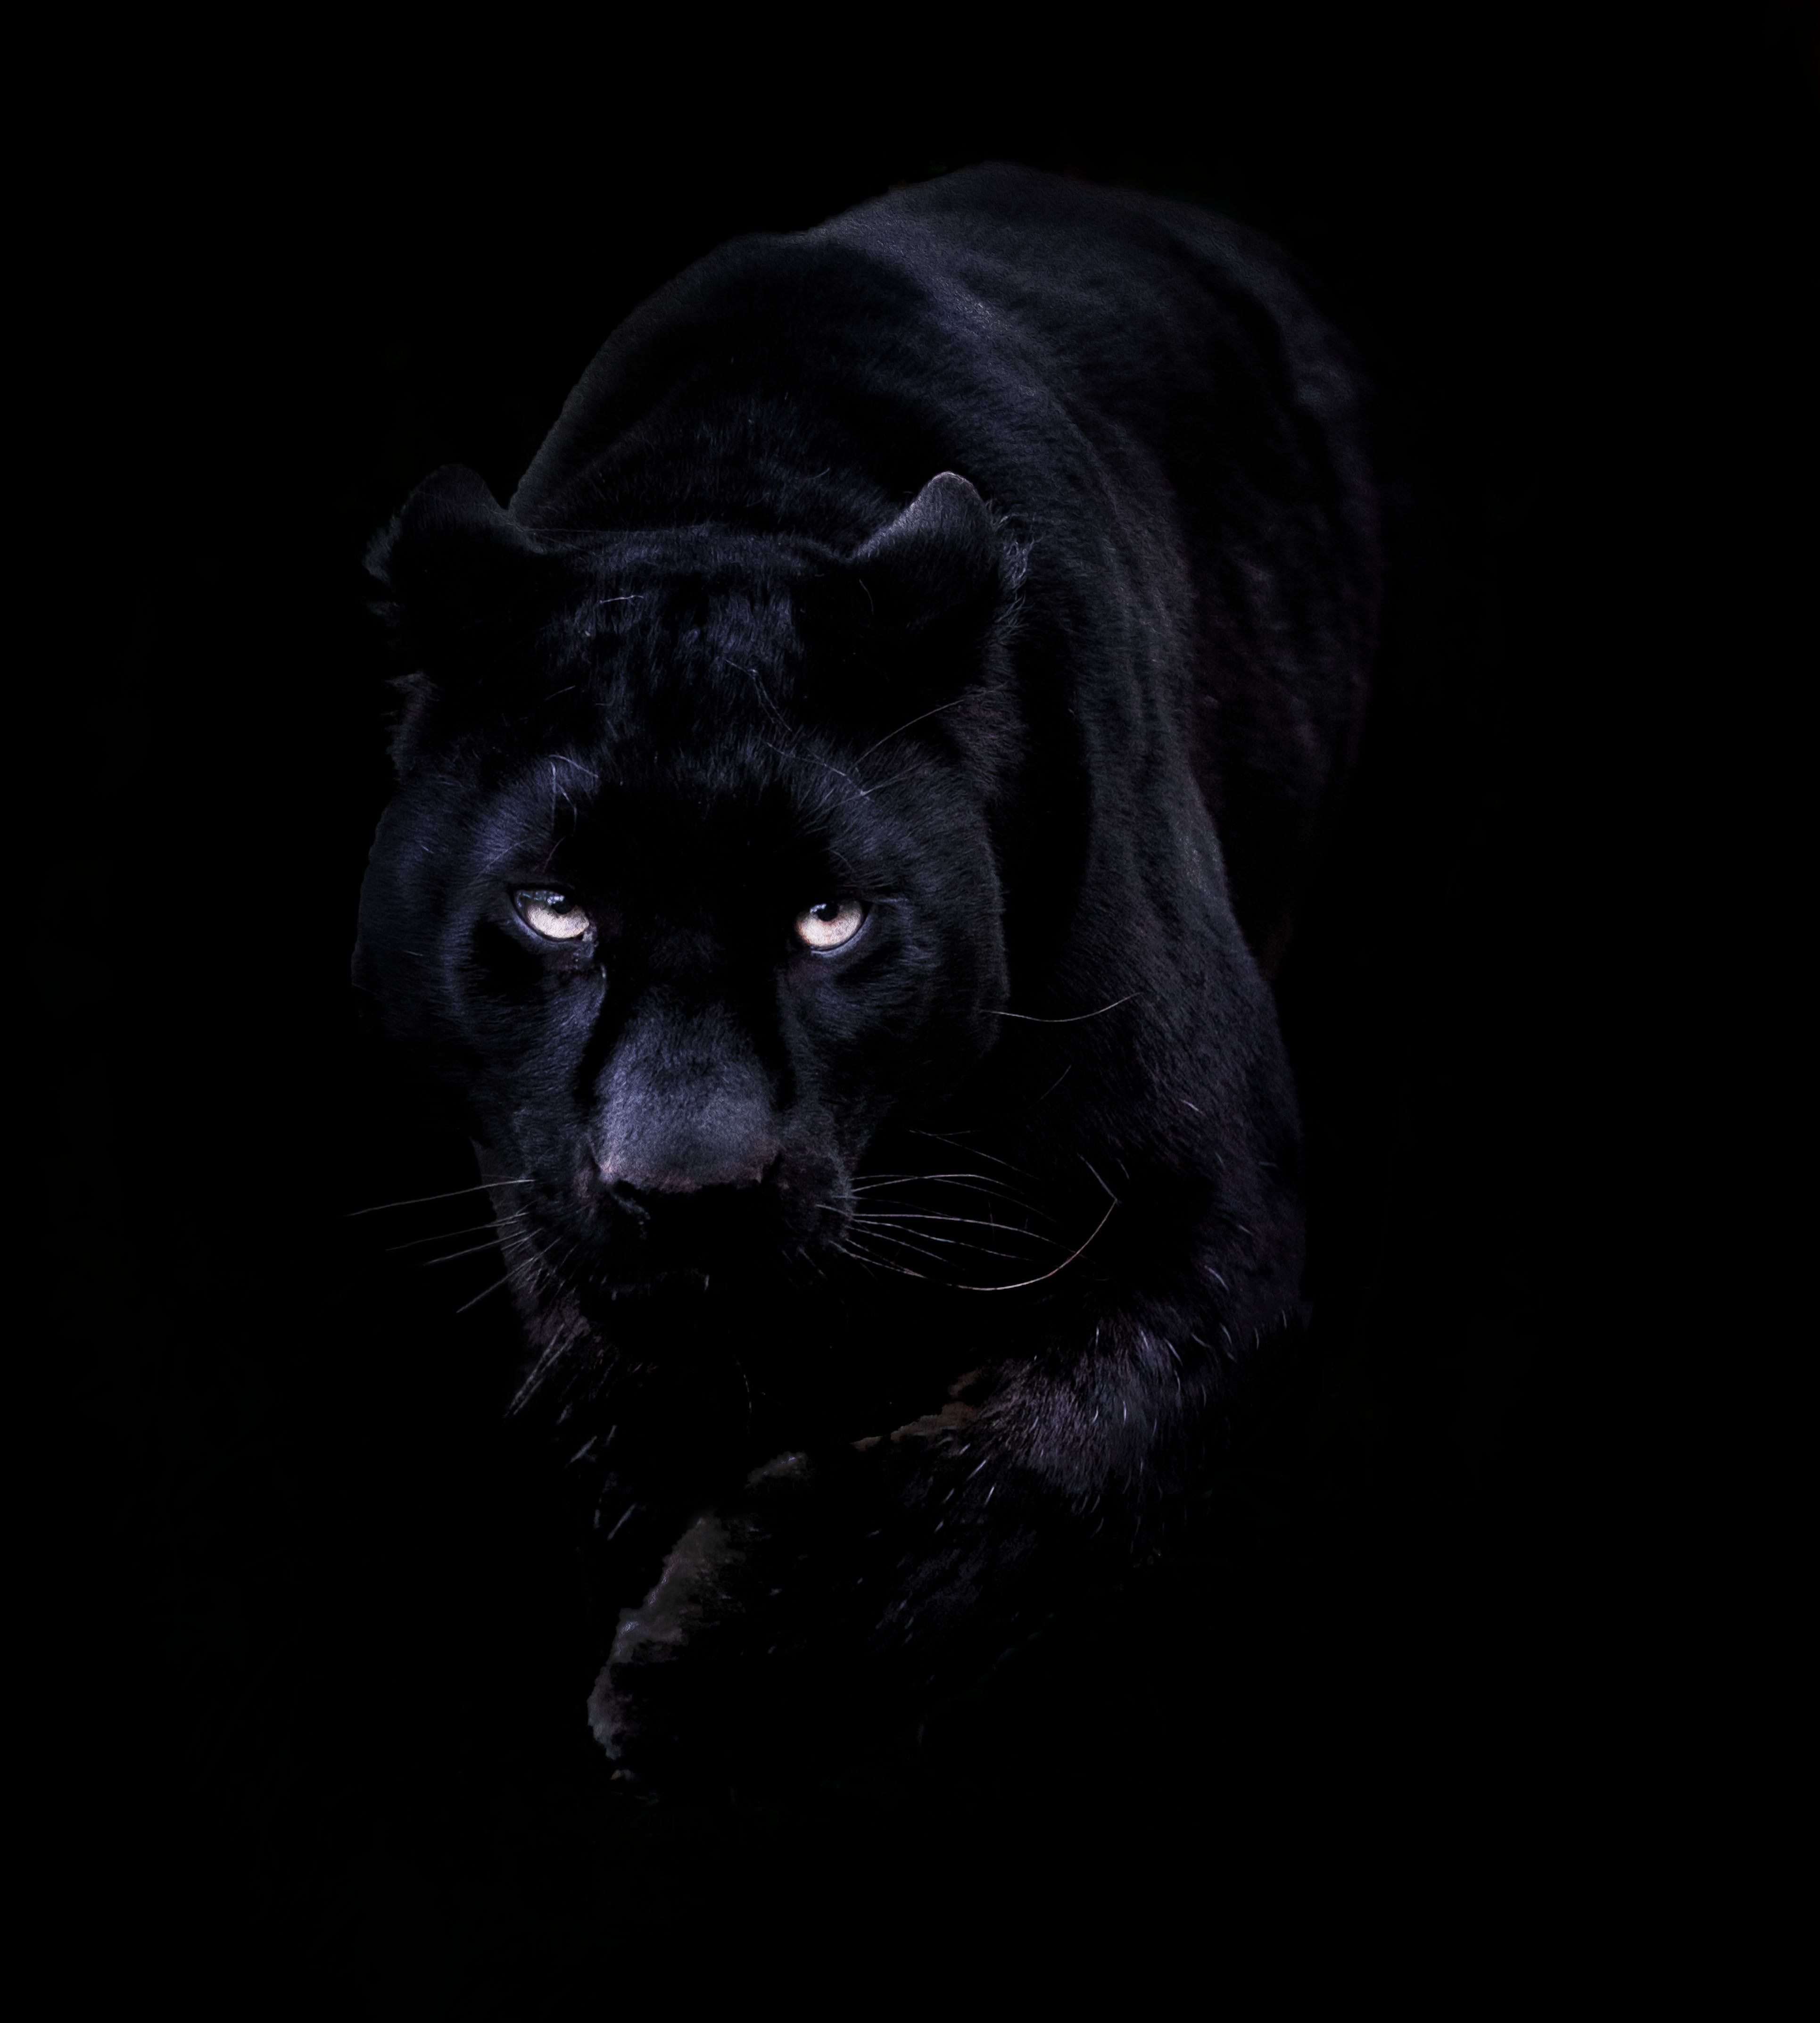 71 Black Jaguar Wallpaper On Wallpapersafari